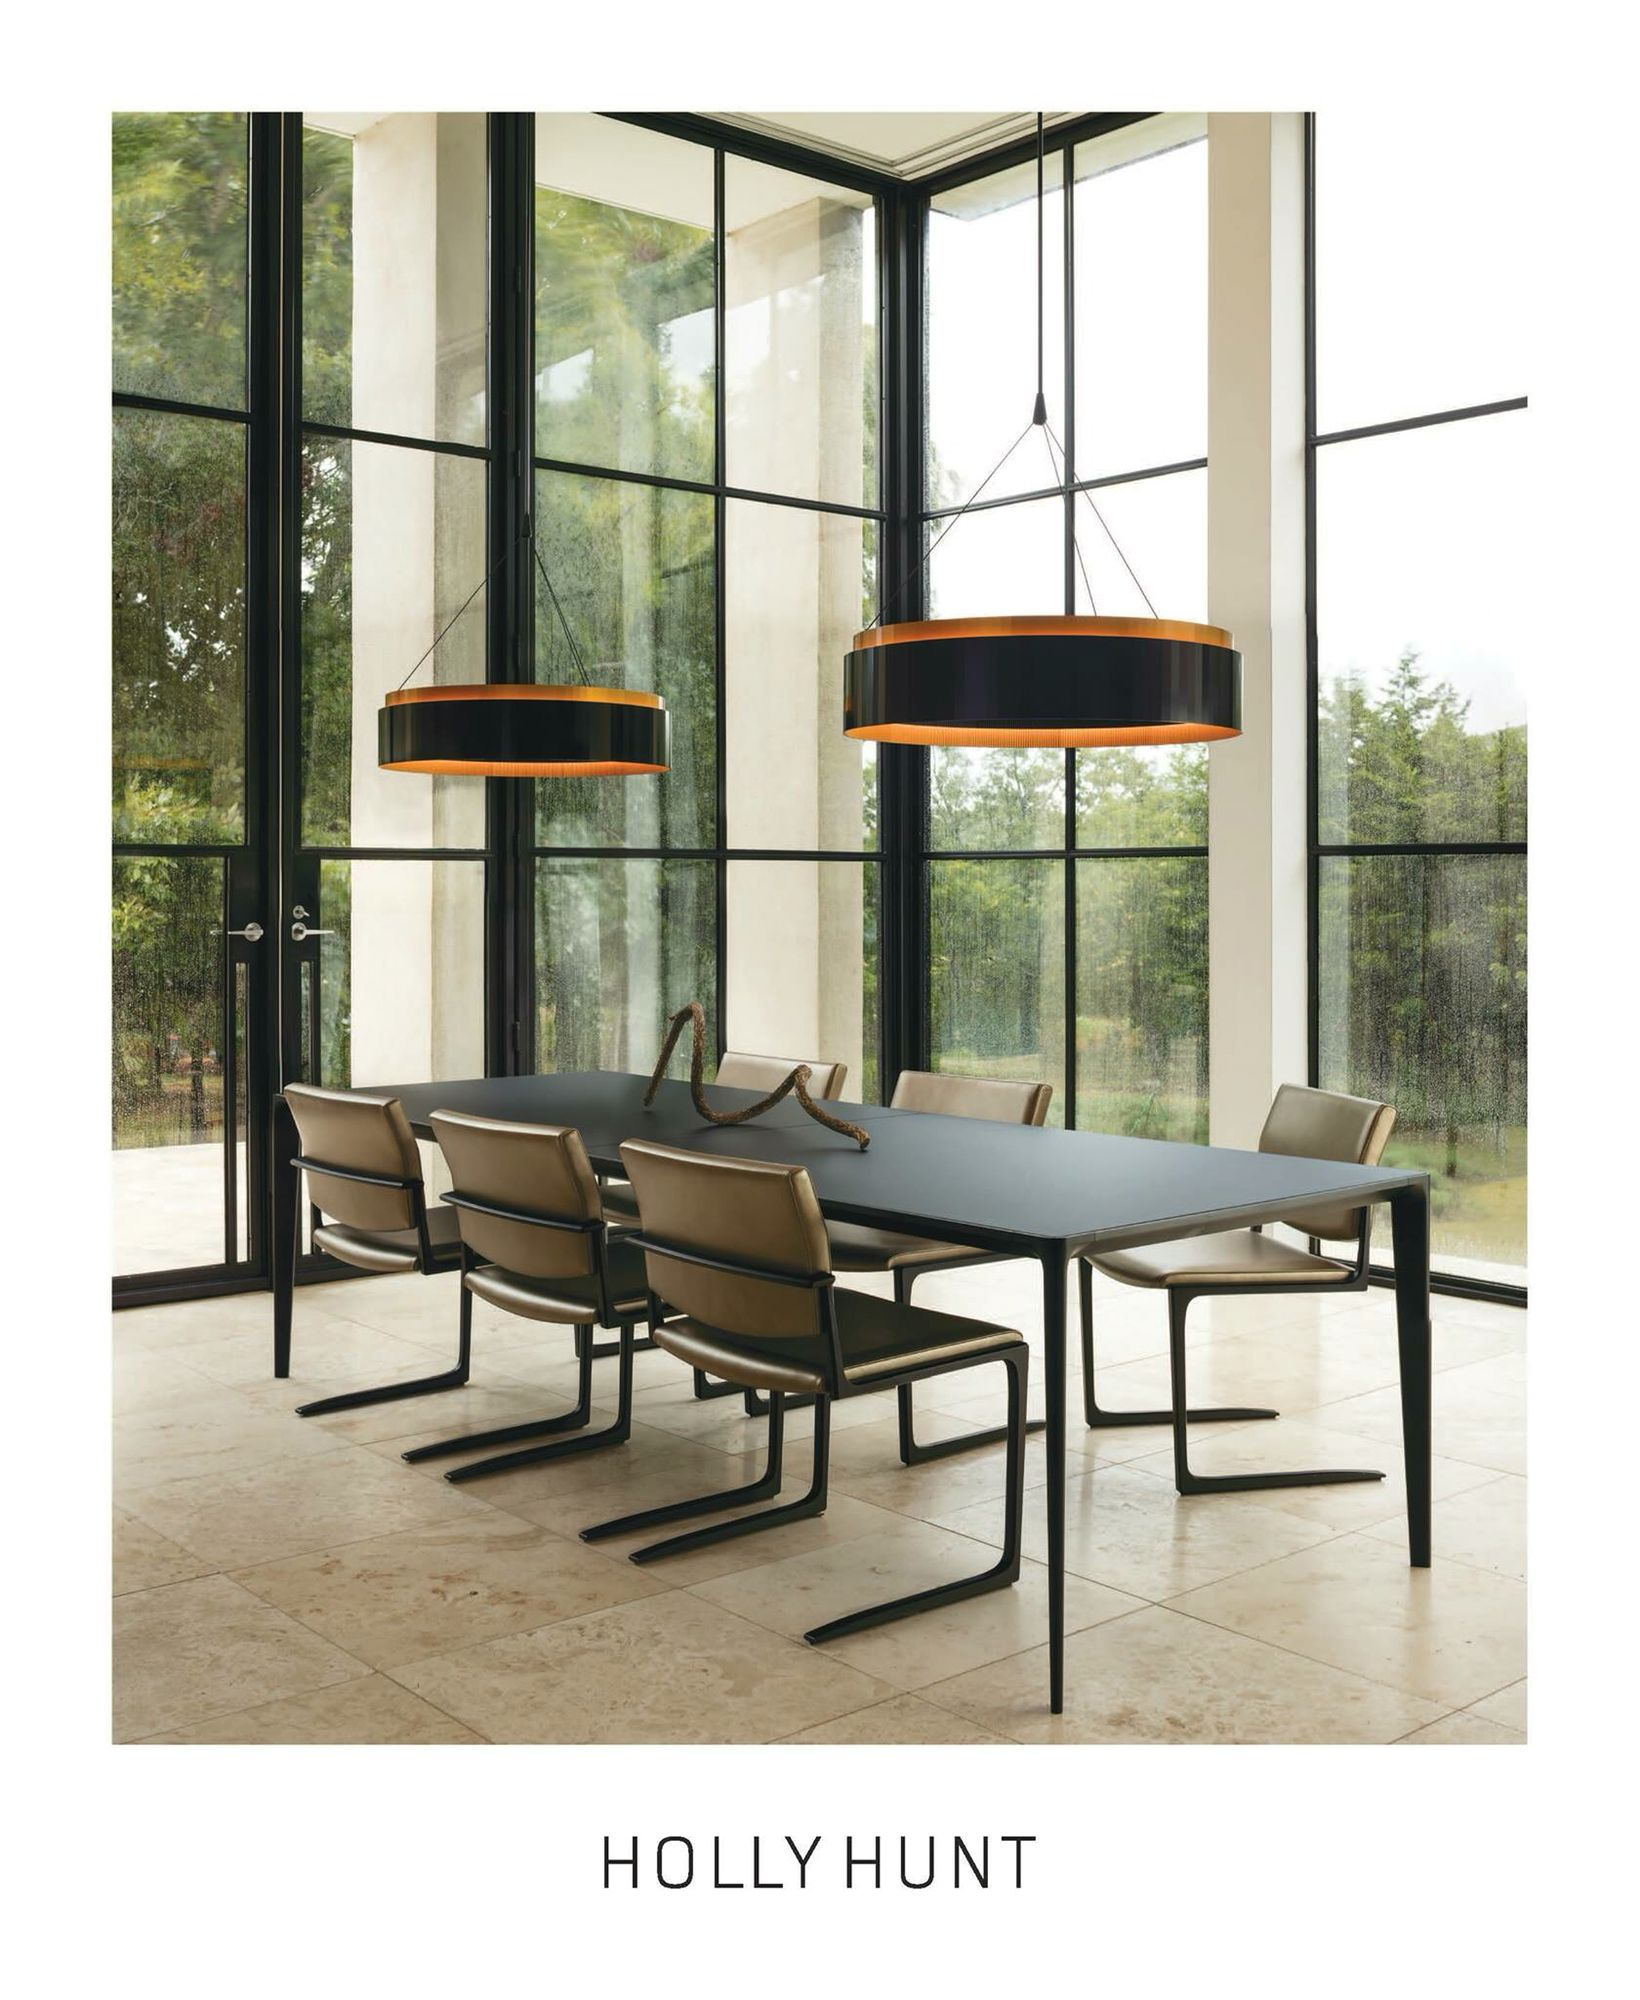 Holly Hunt Sofa Cost Kvadrat Sofapuder Design Shadow Dining Table And Chairs Ember